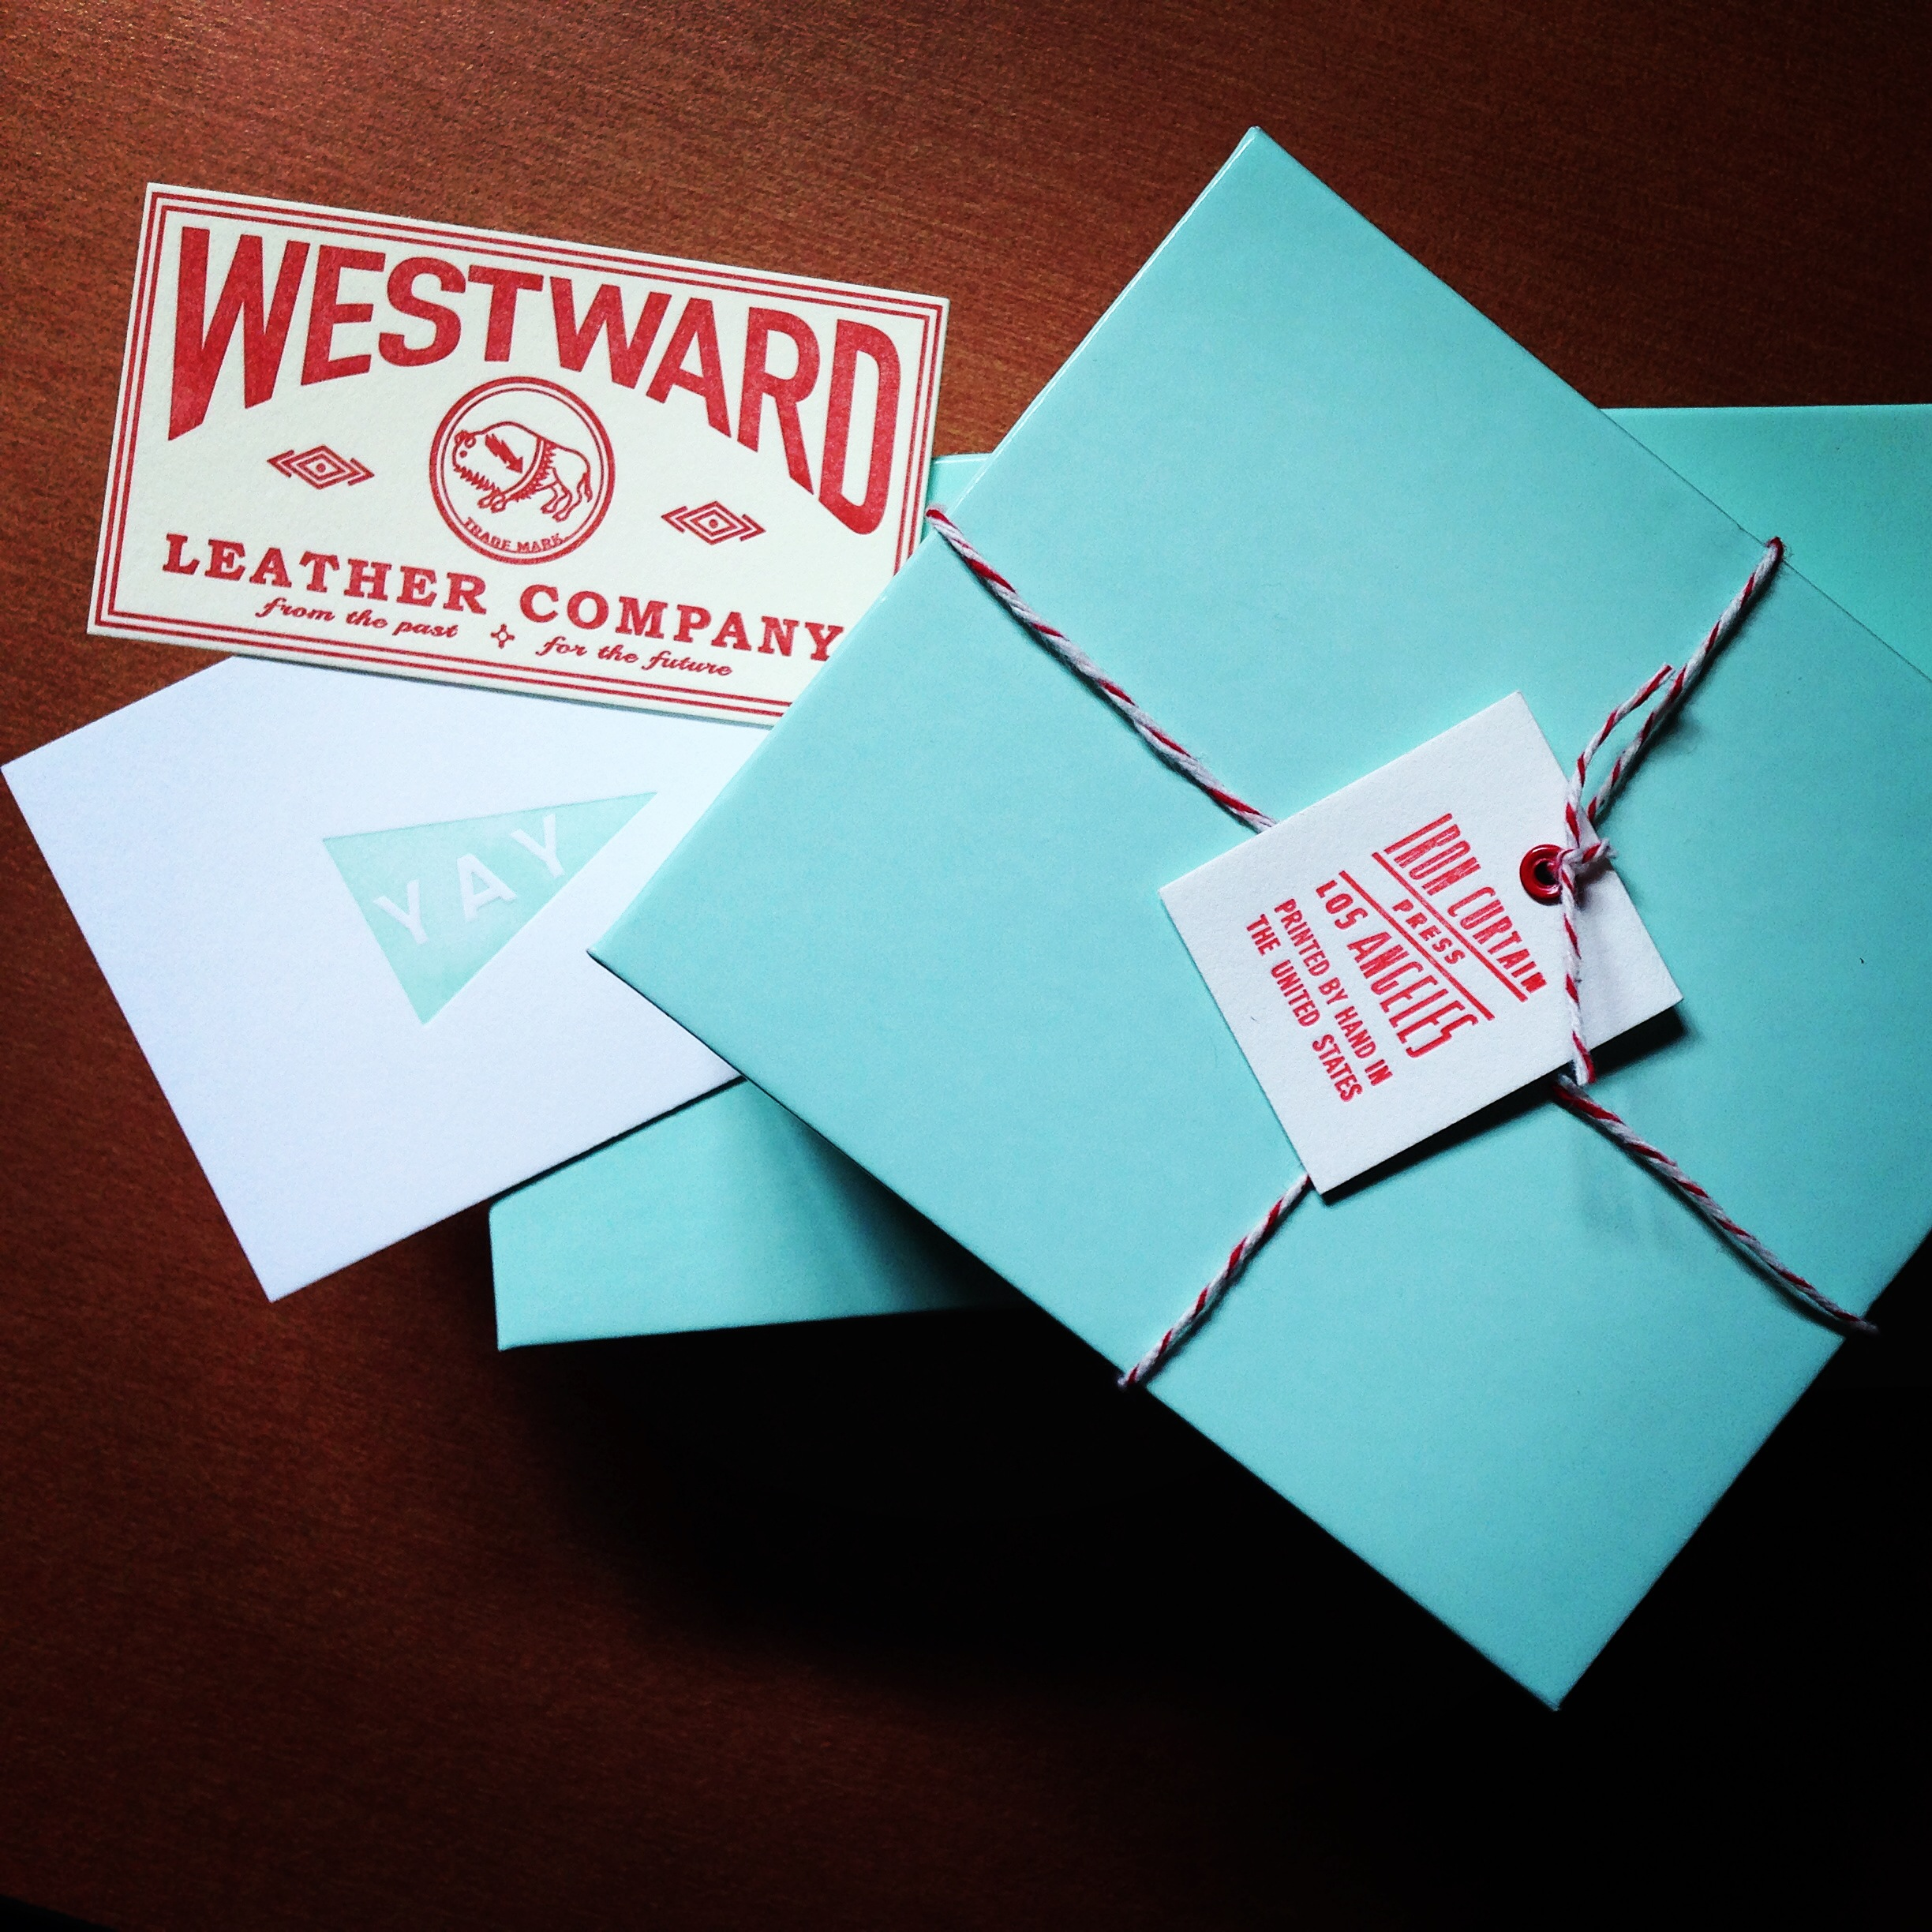 We are just ramping up here at WLC, getting ready to go live with our first product. Very exciting times! And to help kick things off, we got our new business cards, straight off the press, literally. Our good friends at Iron Curtain Press down in LA killed it on these!Thank you!